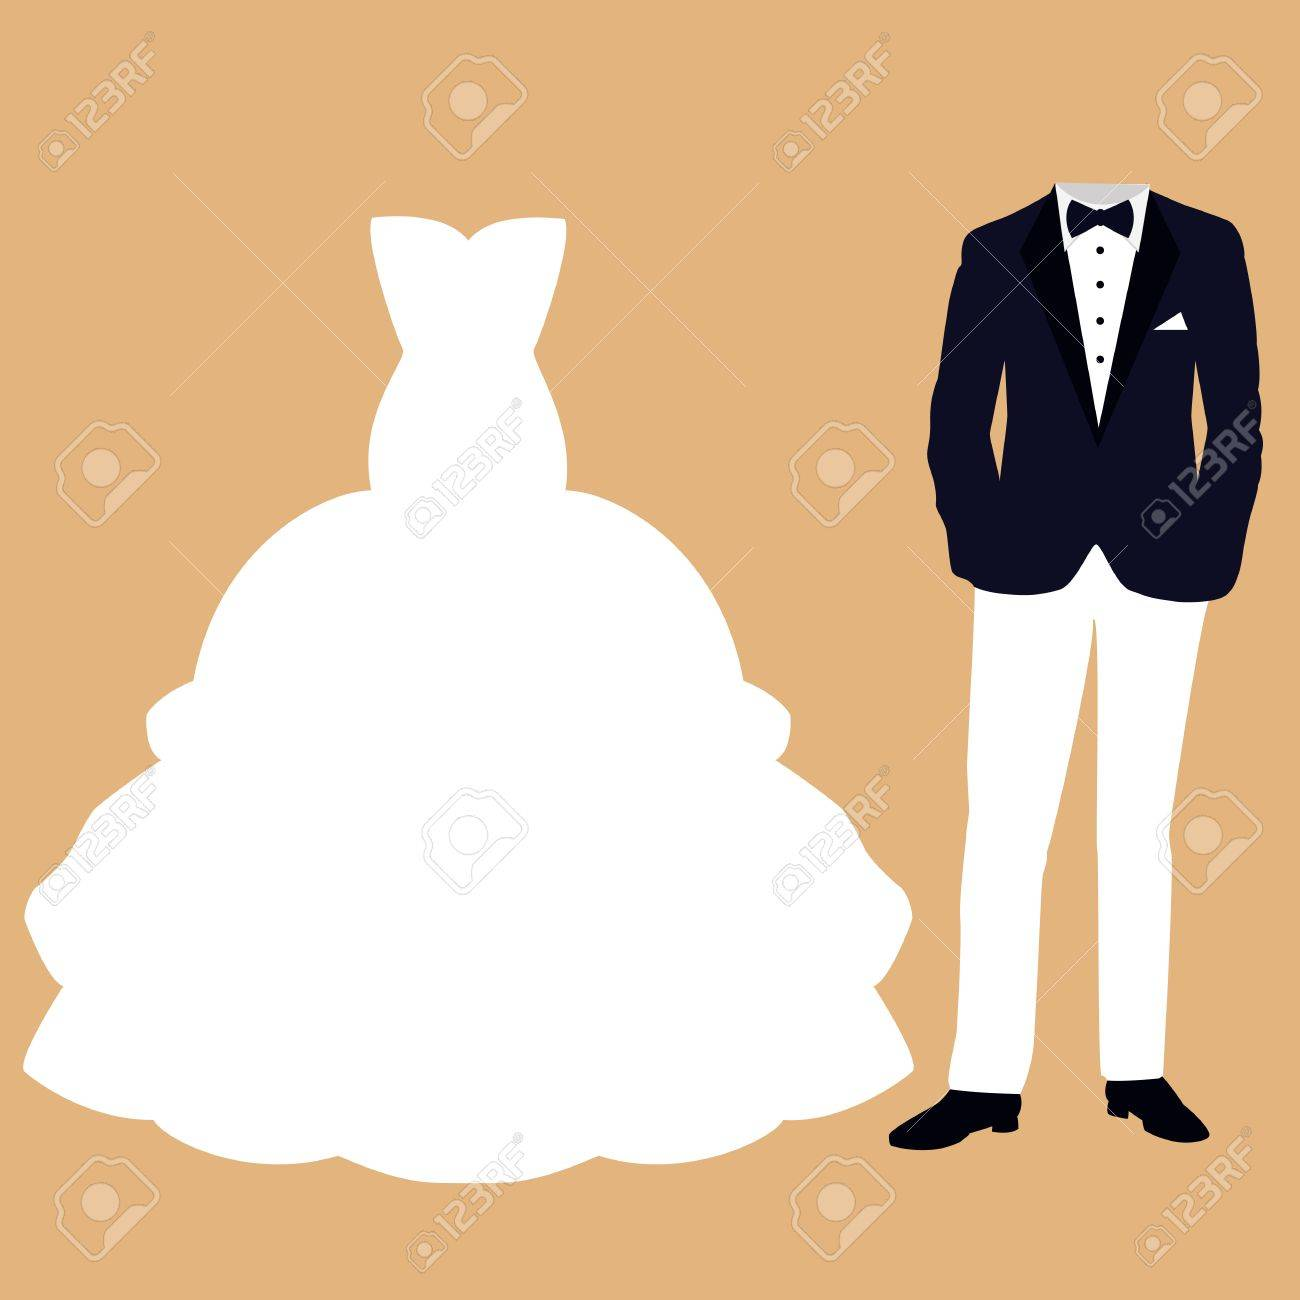 Wedding card with the clothes of the bride and groom. Beautiful wedding dress and tuxedo. Vector illustration. - 84337412